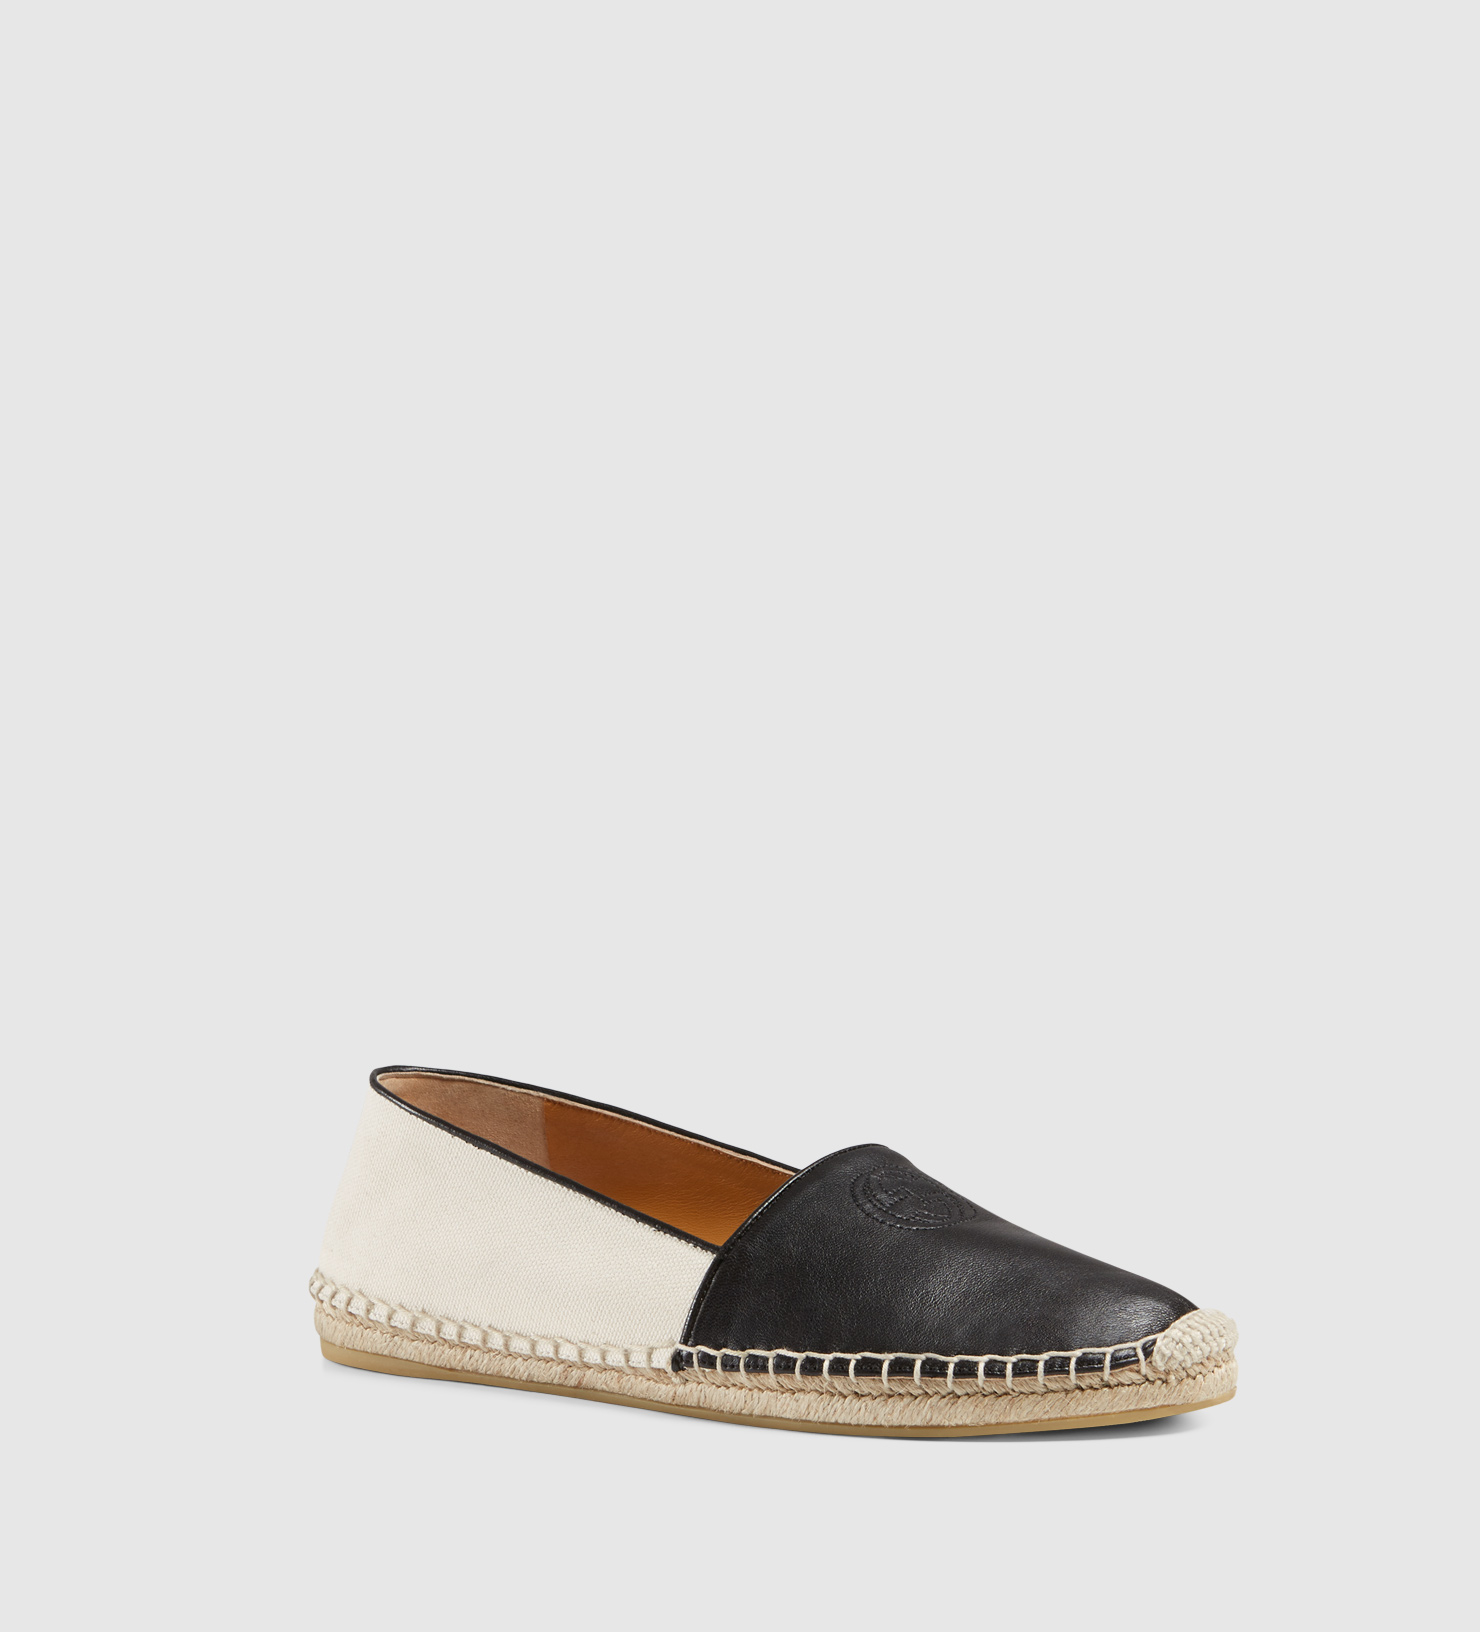 acc8985d977 Lyst - Gucci Canvas And Leather Slip-on Espadrille in Black